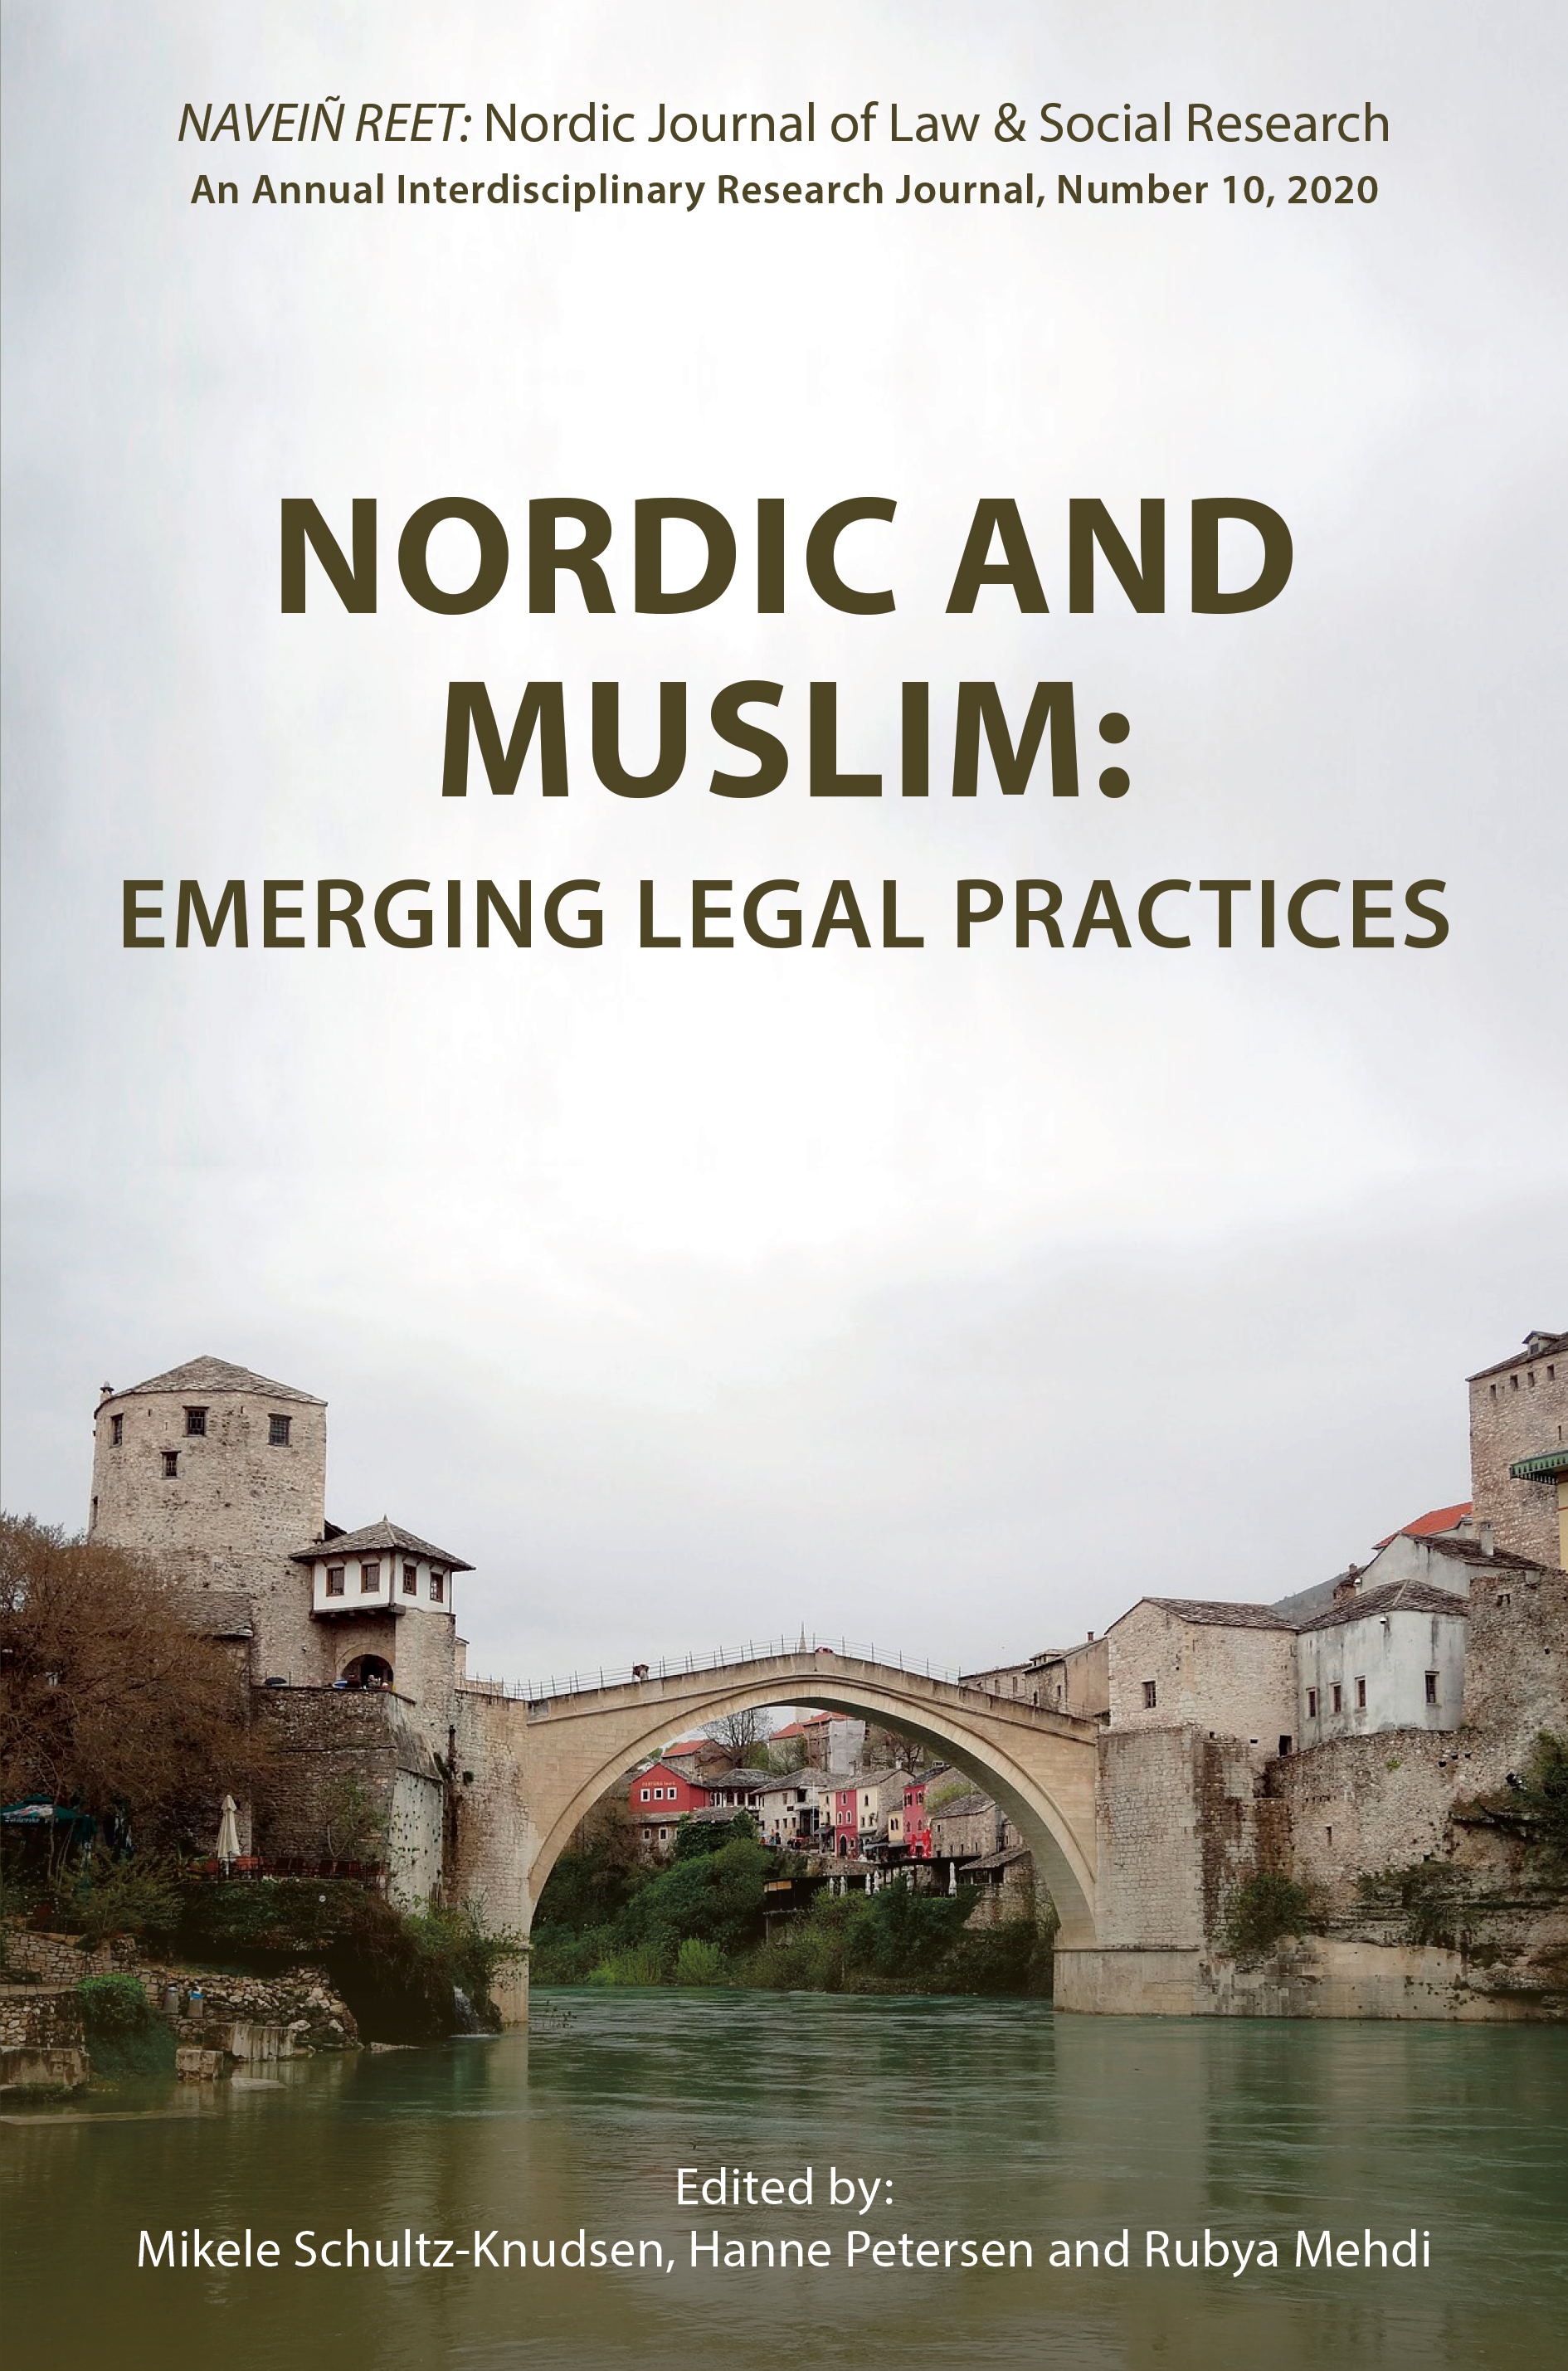 View No. 10 (2020): NAVEIÑ REET: Nordic Journal of Law & Social Research